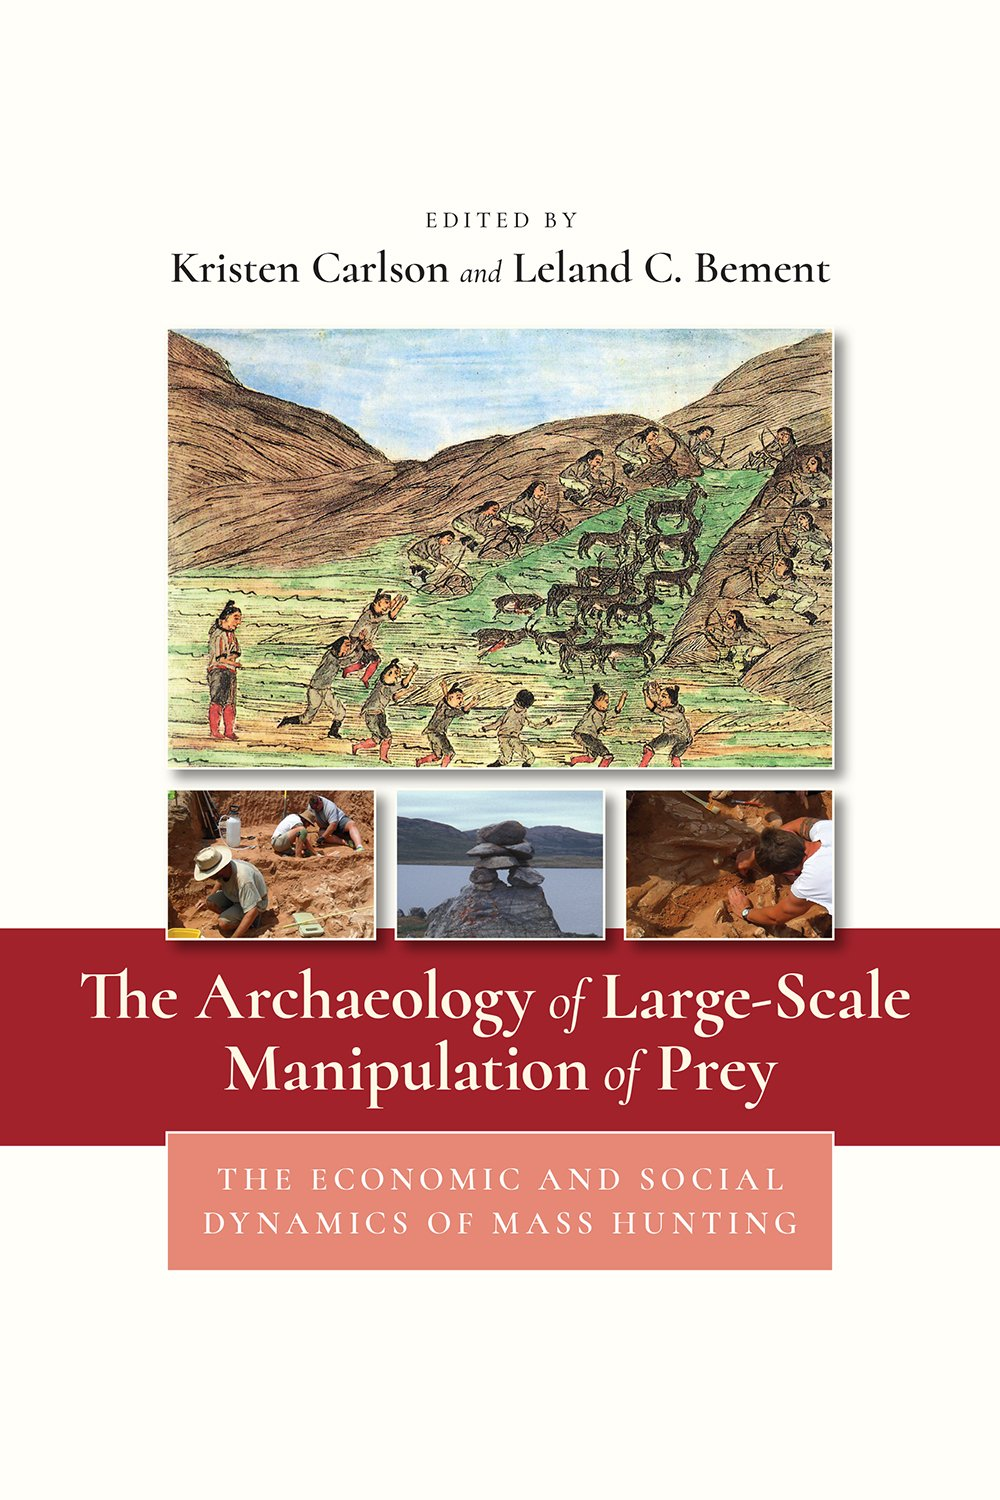 The Archaeology of Large-Scale Manipulation of Prey: The Economic and Social Dynamics of Mass Hunting pdf